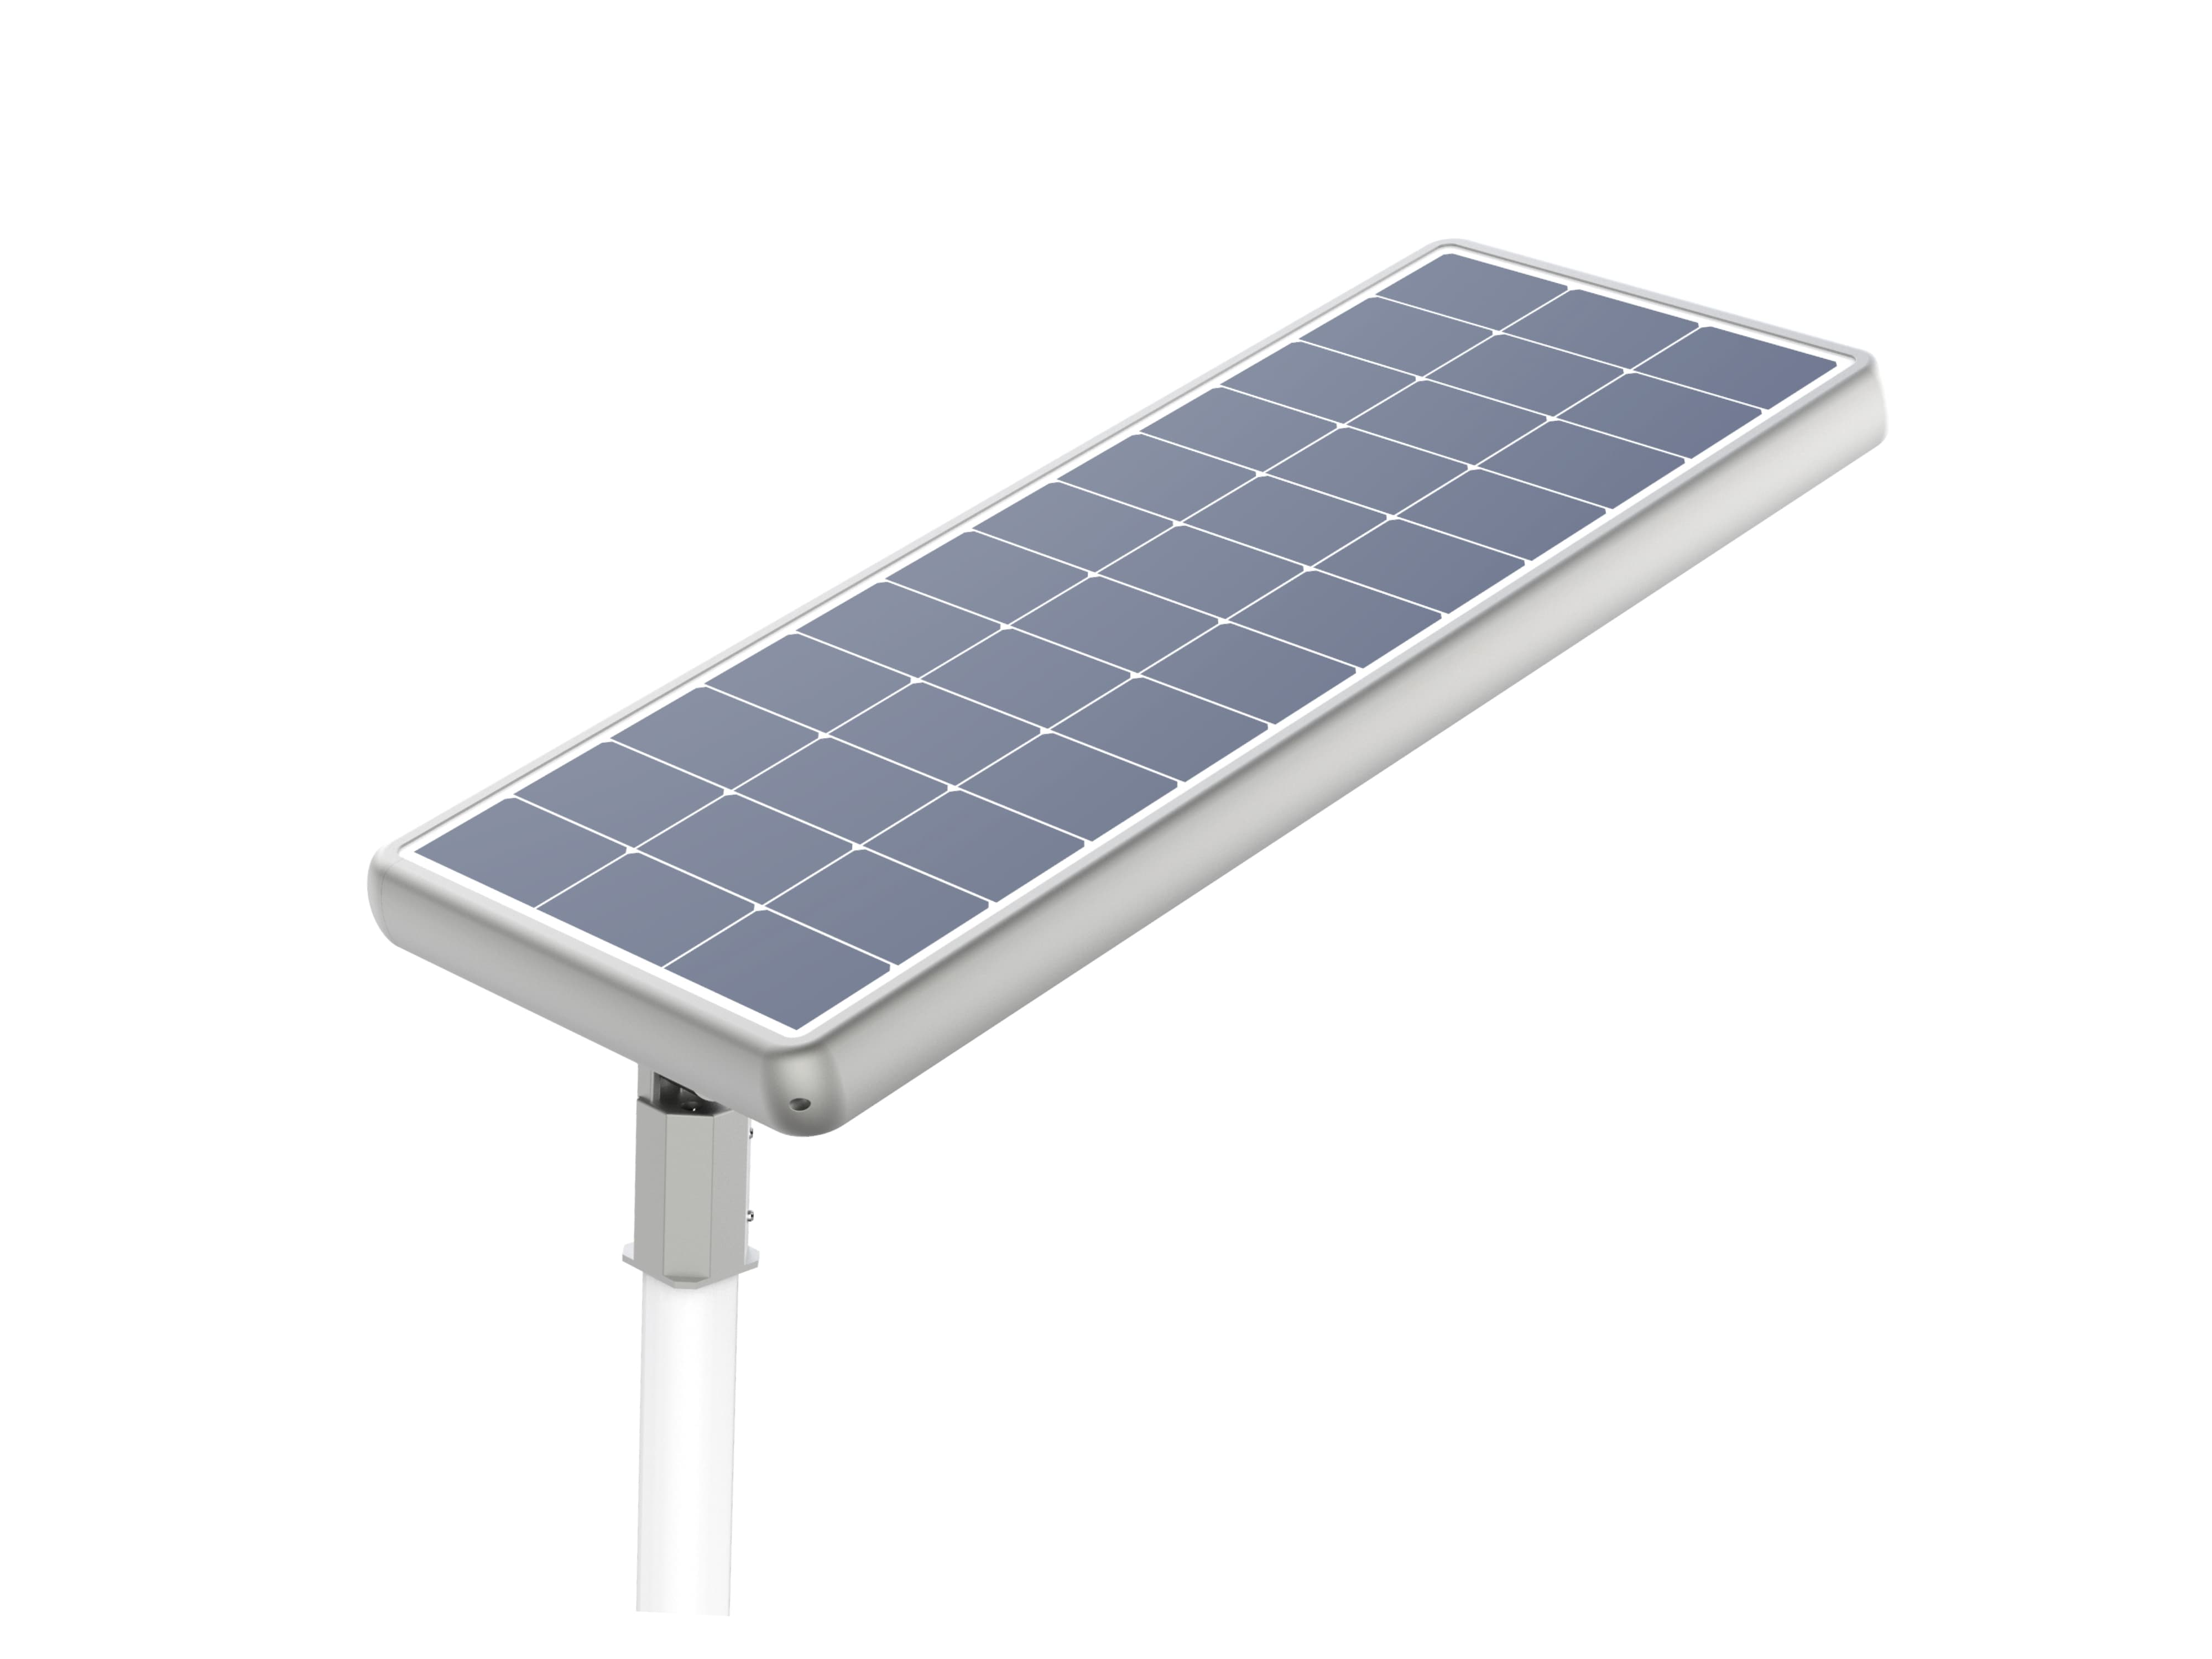 Lightgogo 4 all-in-one solar street lights are raised light sources which are powered by its own solar power self-generating system.